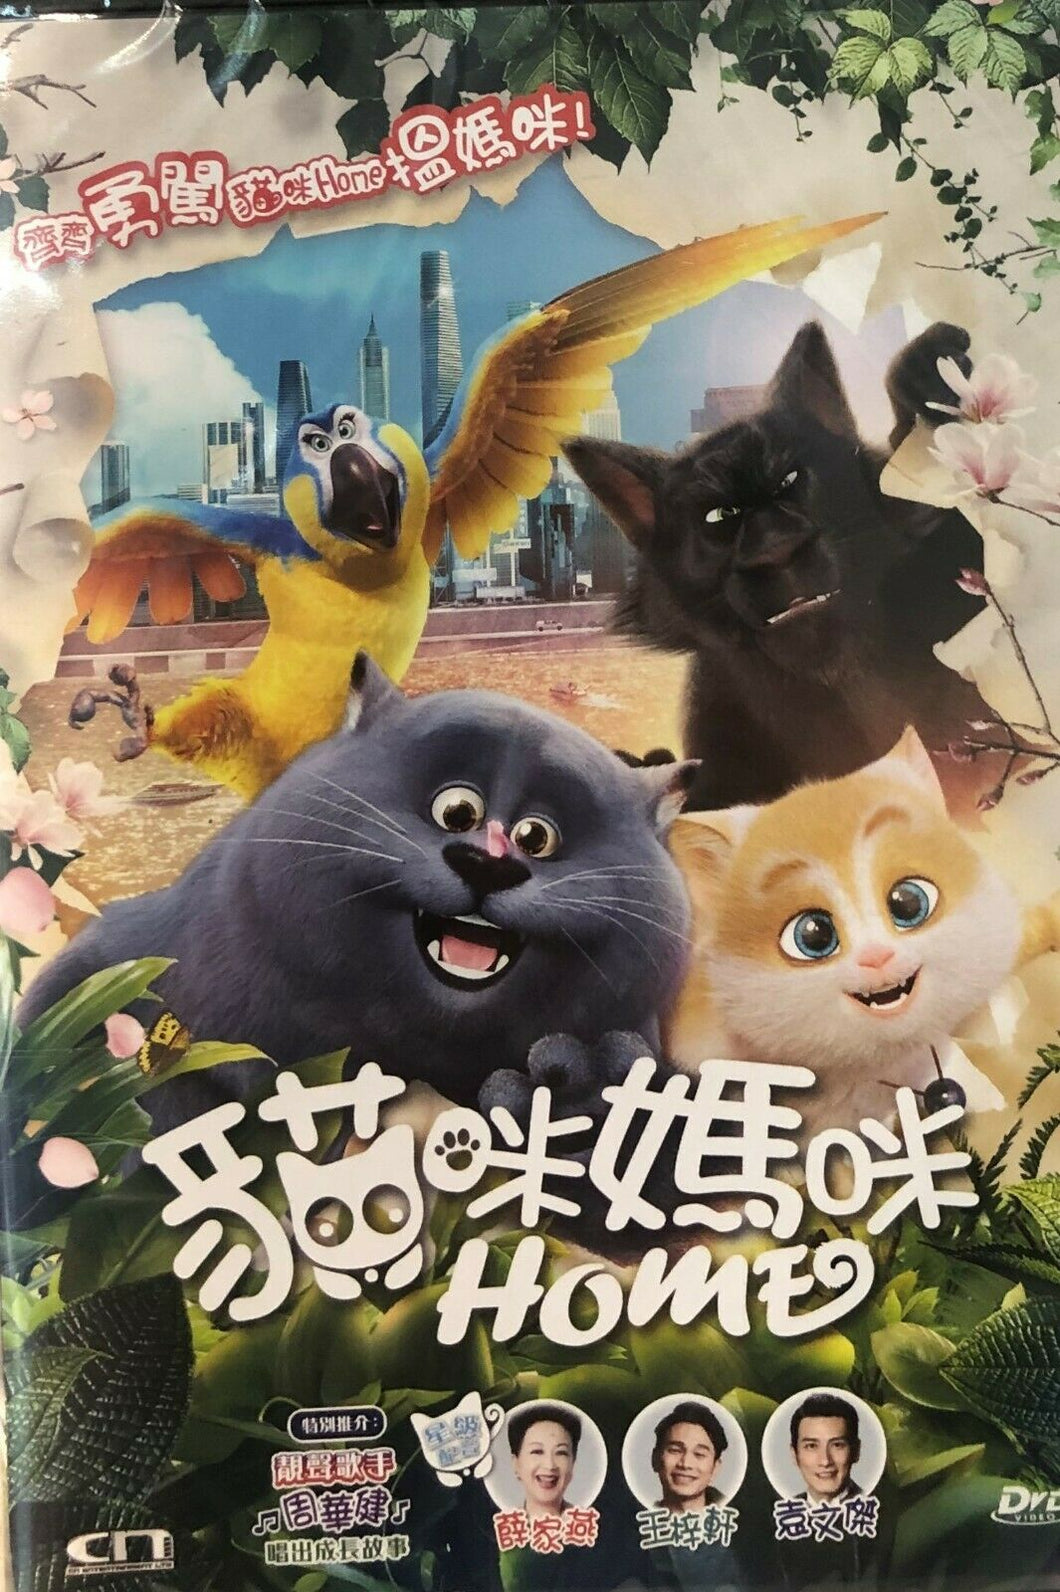 CATS 貓咪媽咪 Home 2018 (Animation) DVD ENGLISH SUBTITLES (REGION FREE)